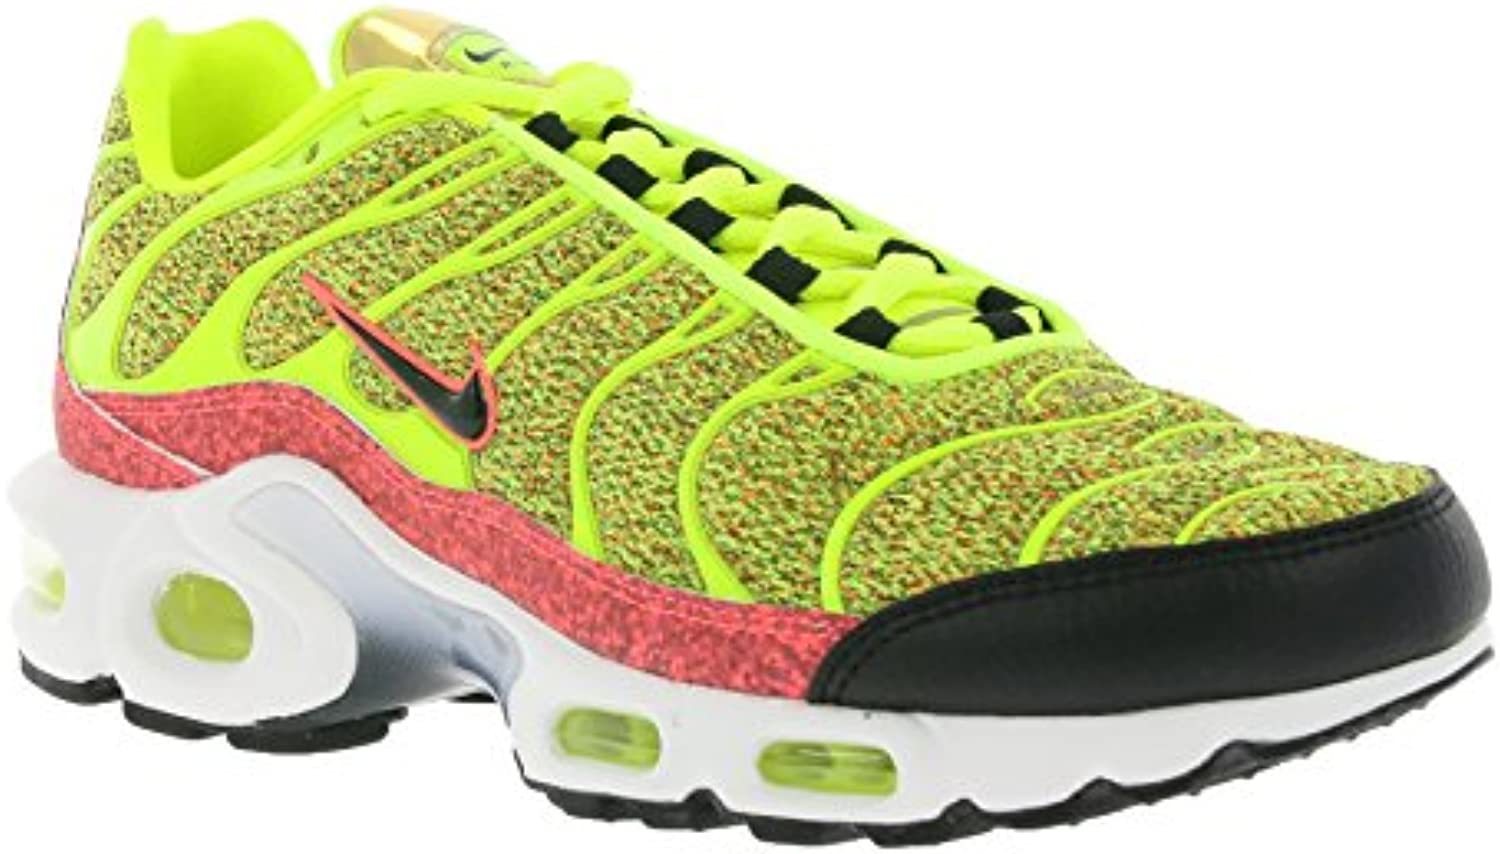 Man/Woman Nike WMNS Air Max Plus Special Edition Women's Women's Women's Sneaker Yellow 862201 700 Attractive and durable At a lower price Perfect processing RN30286 15ebc0